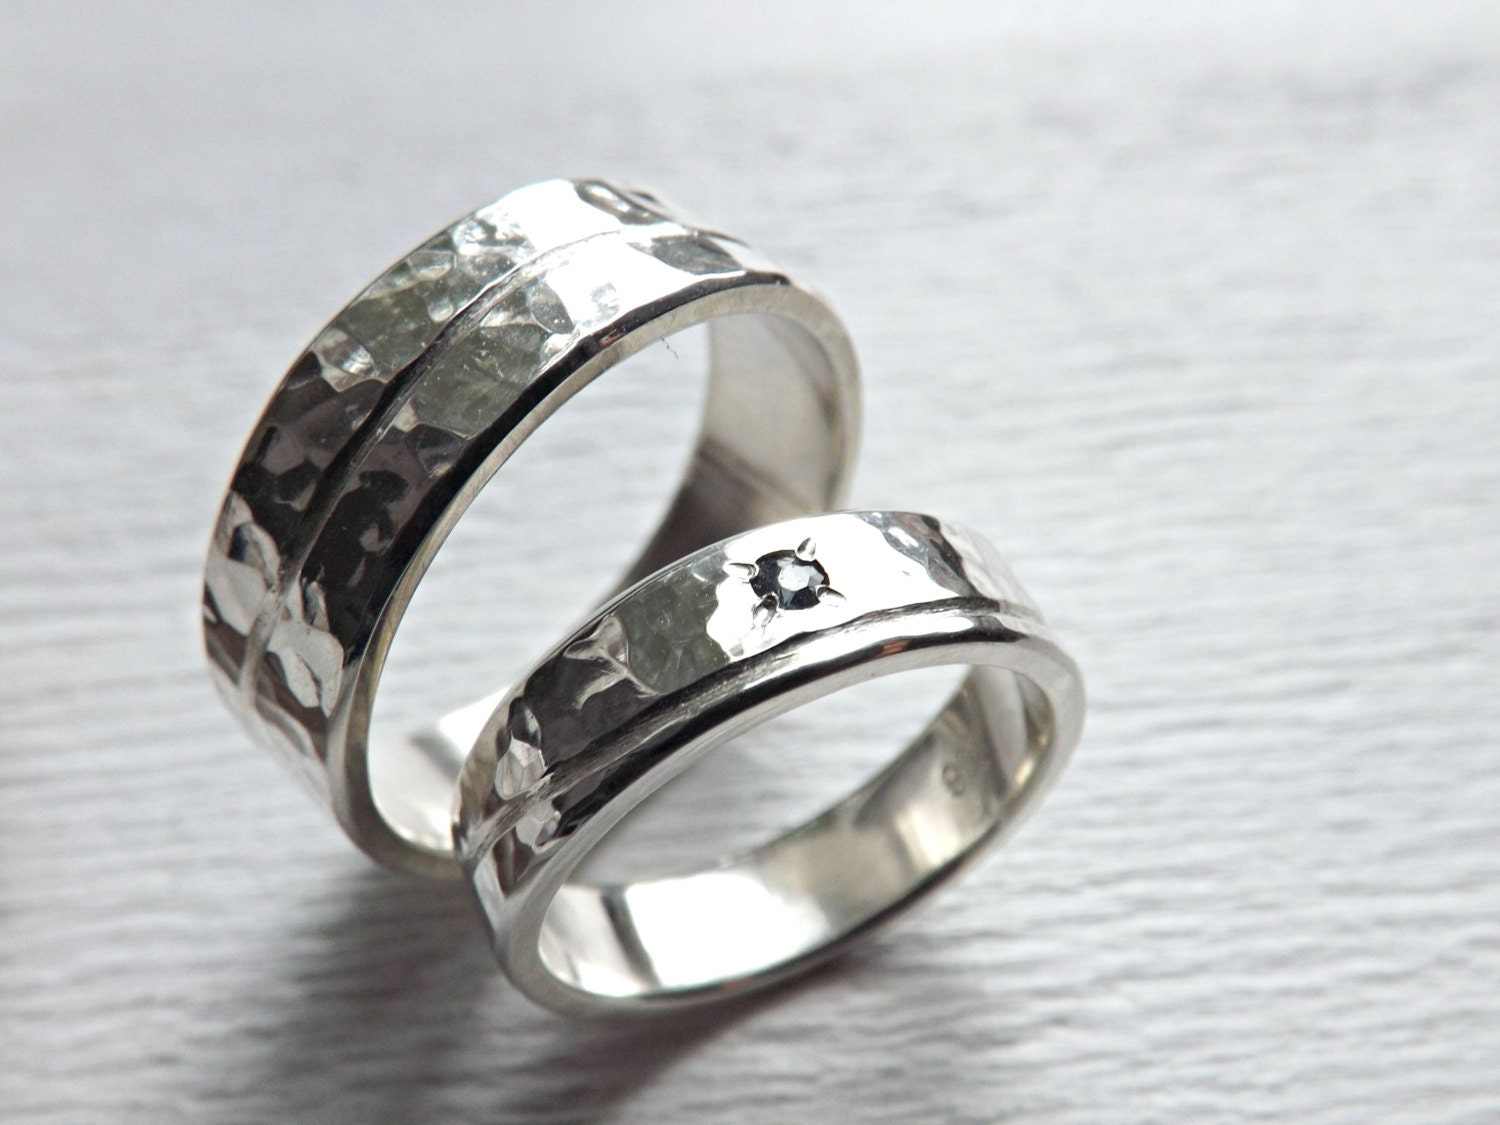 unique wedding bands silver matching promise rings silver. Black Bedroom Furniture Sets. Home Design Ideas